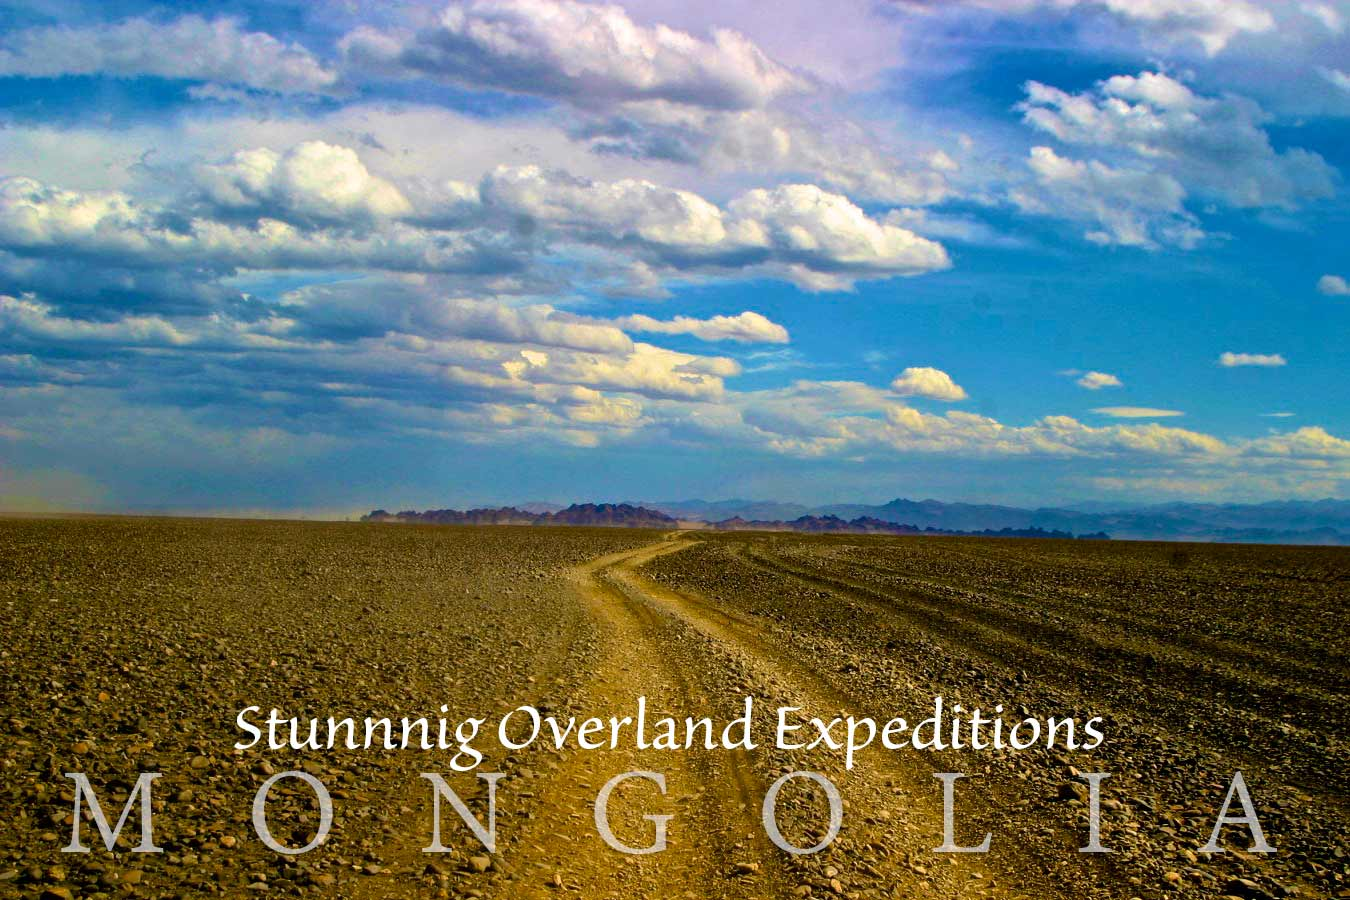 GER to GER Mongolia - Stunning Overland Expeditions